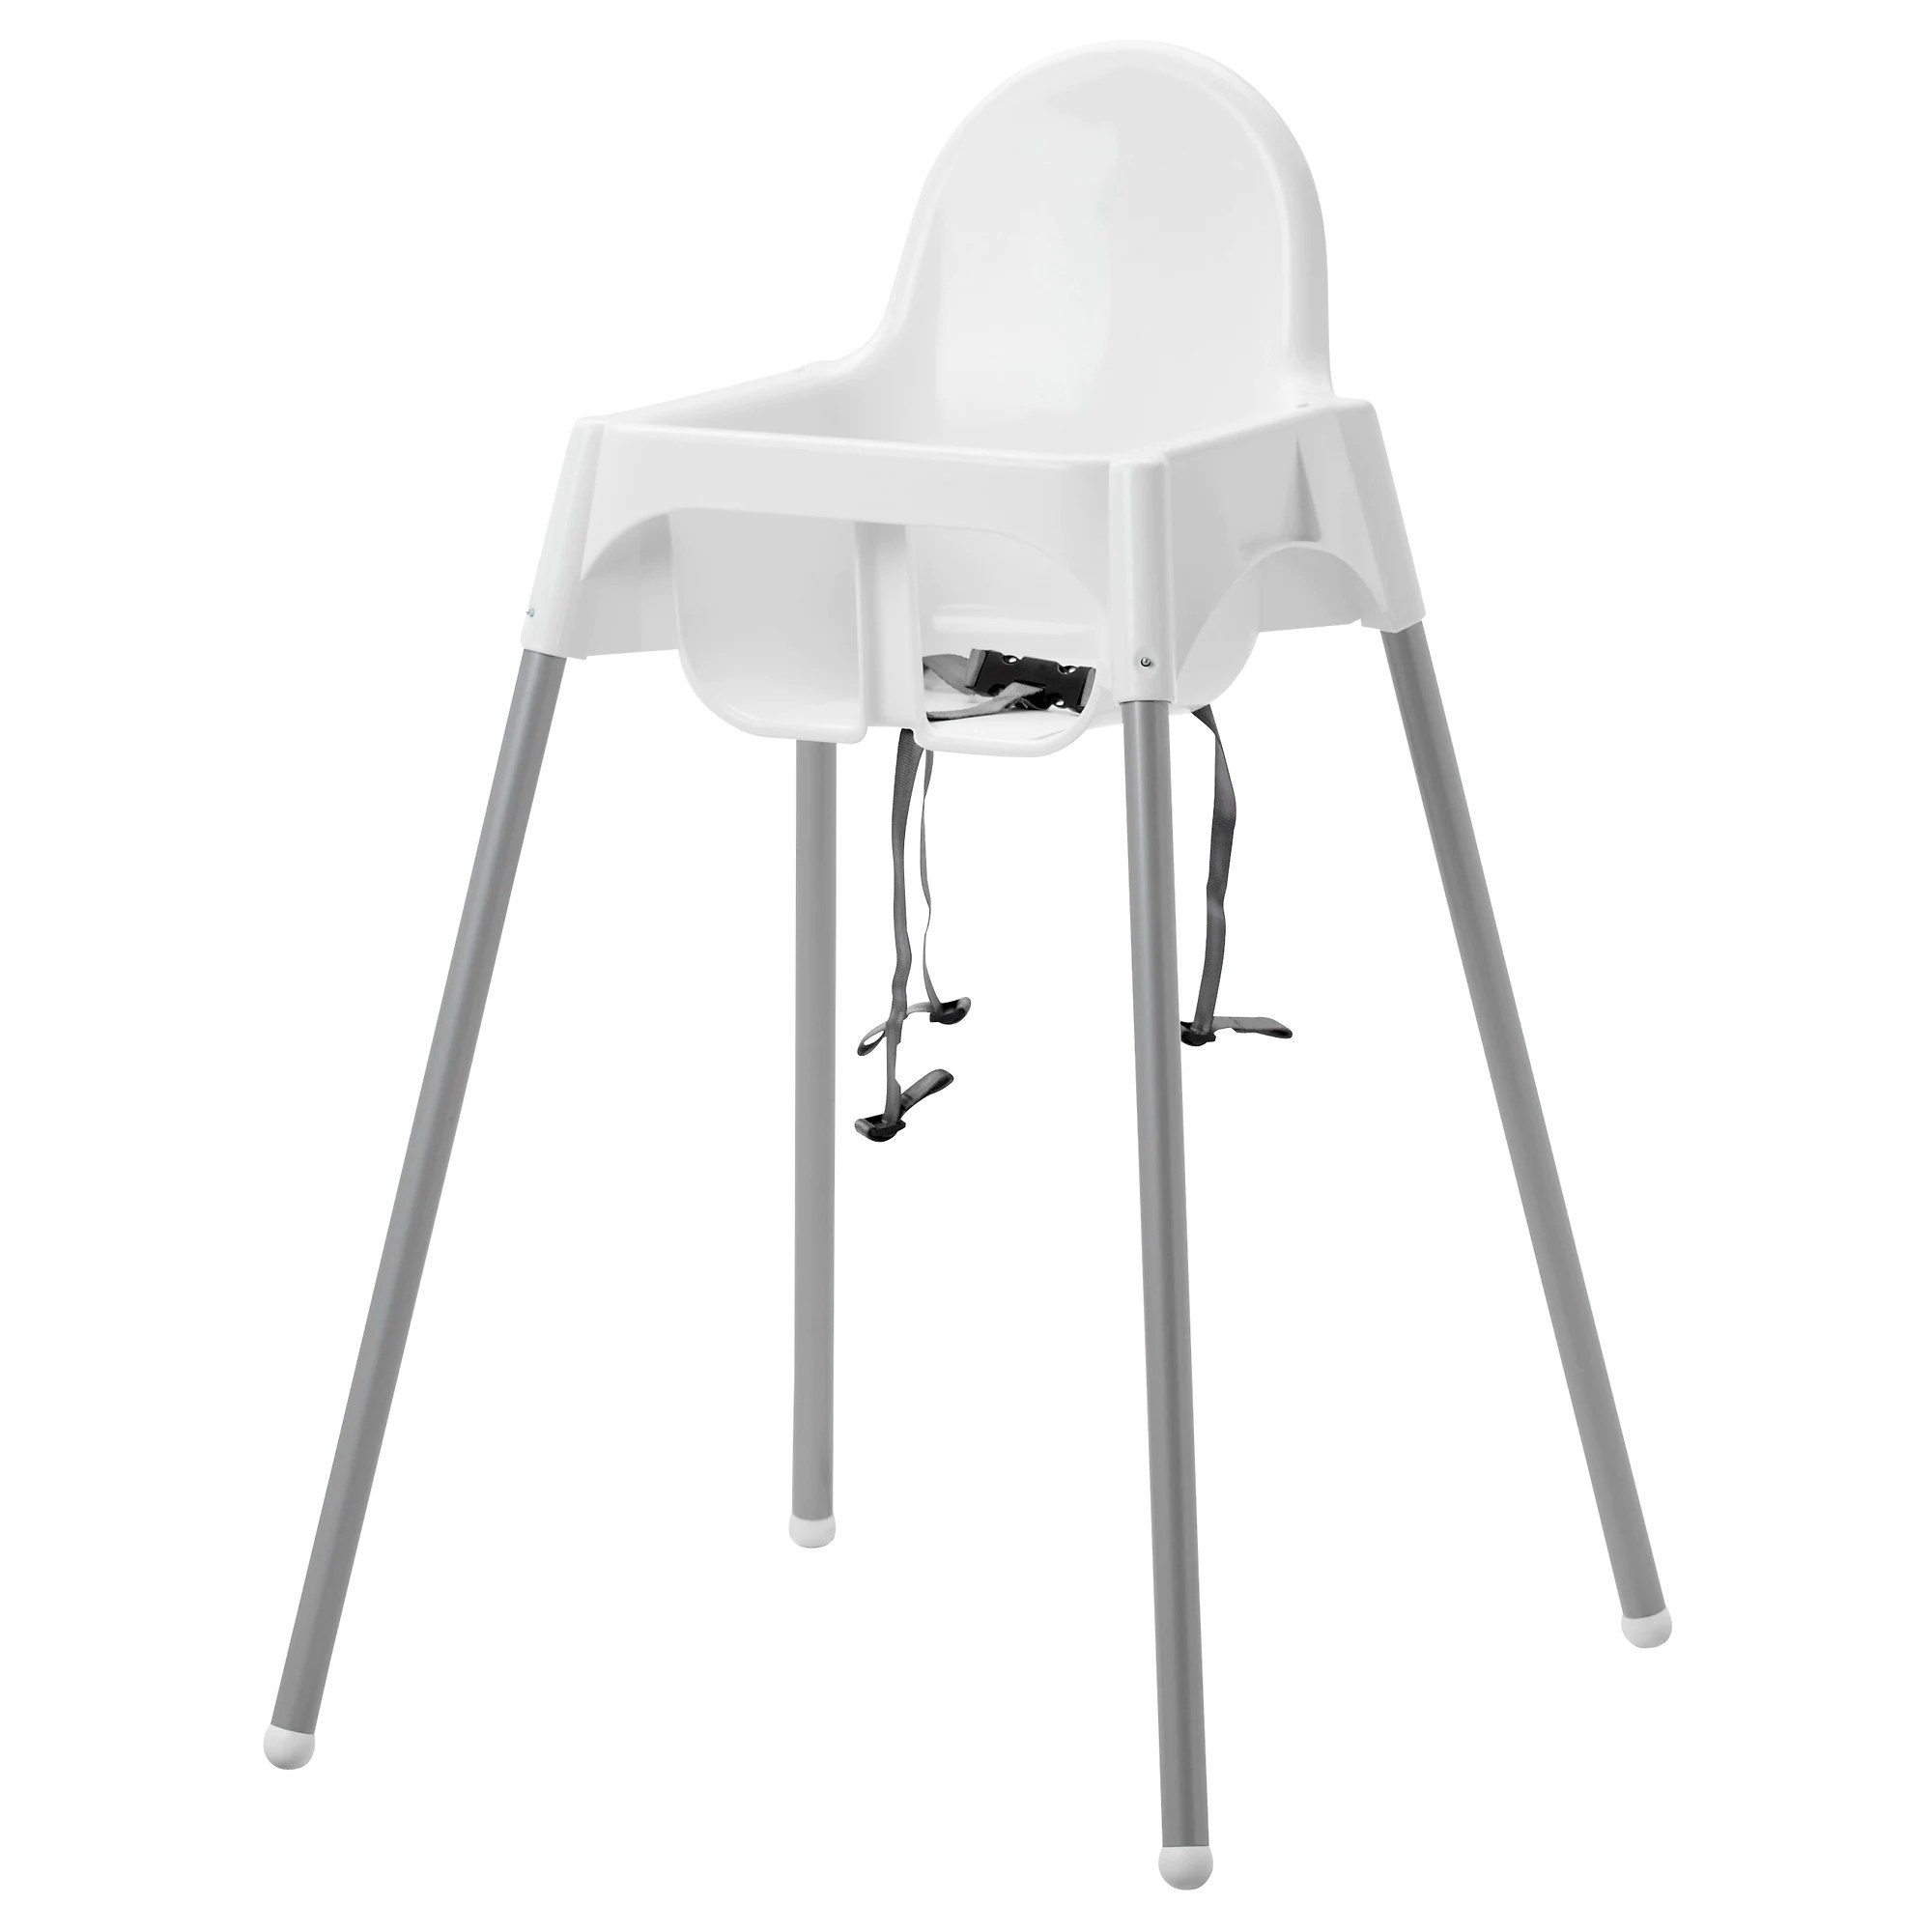 Safety Belt Antilop High Chair With Safety Belt White Silver Color